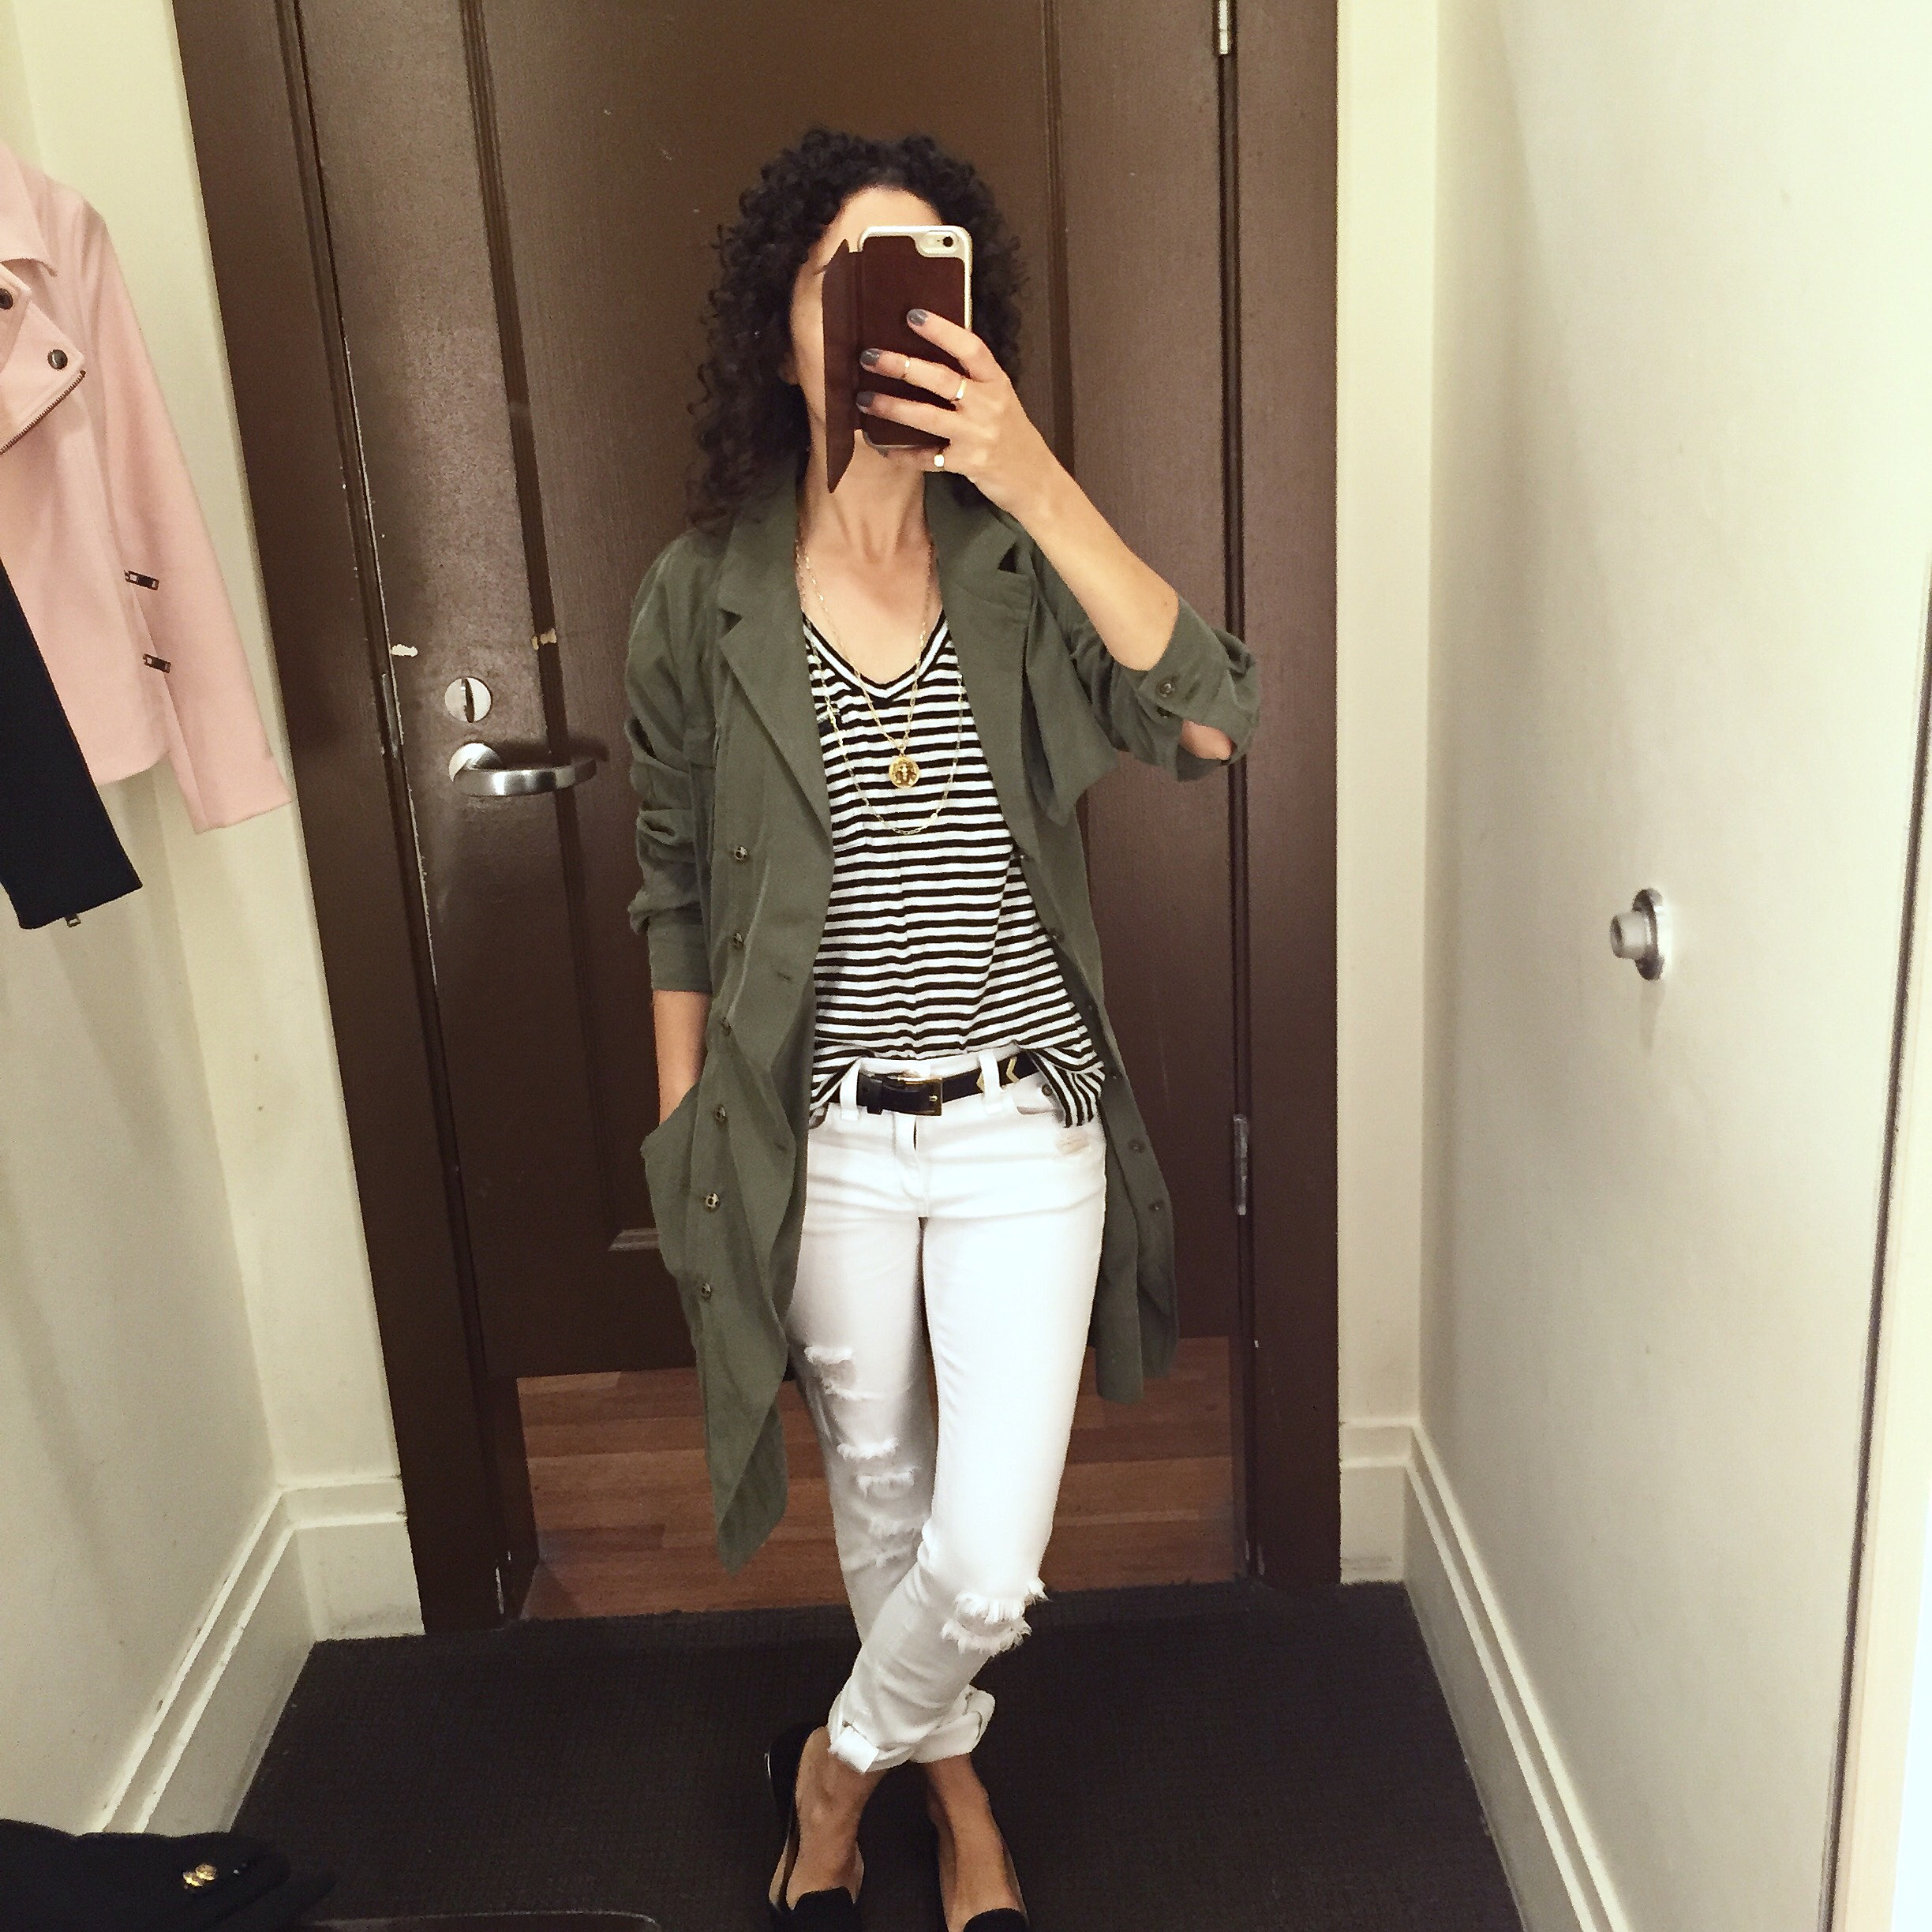 Fit Review Friday – Banana Republic Petite Fall Items